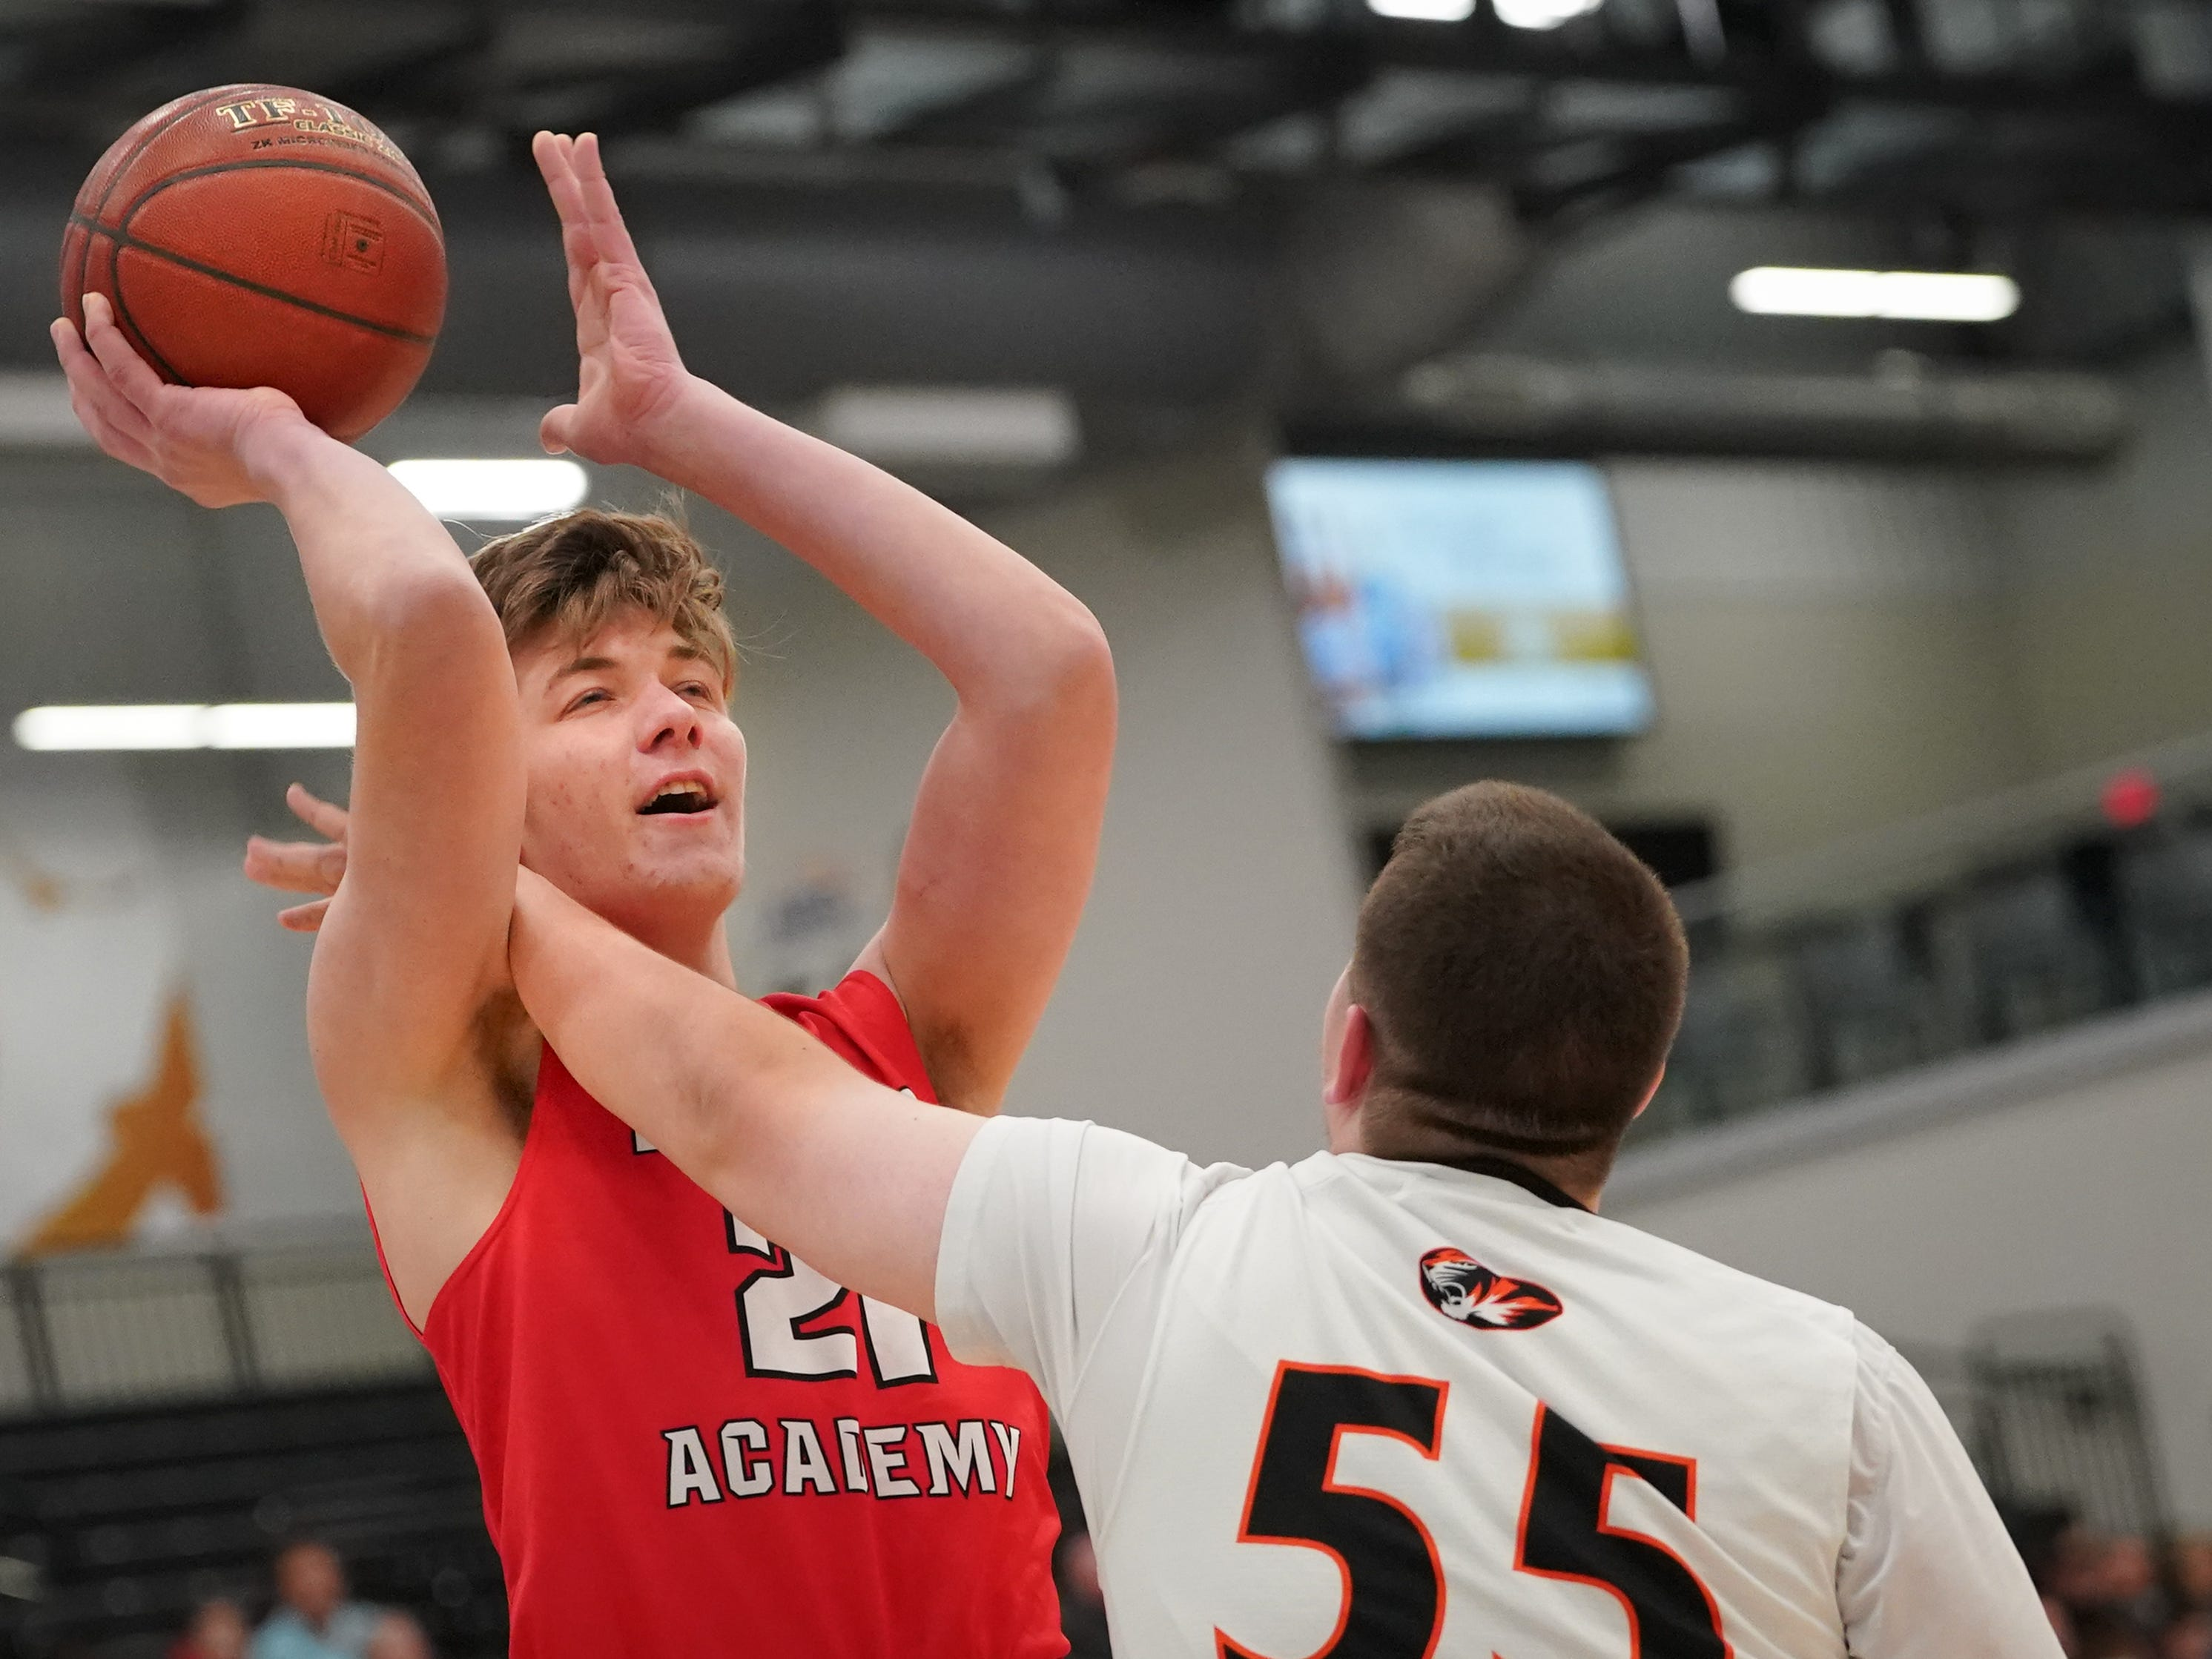 George Muench (21) of Lourdes tries to get a shot while blocked by Jackson Morrin (55) of Ripon. The Lourdes Knights and Ripon Tigers met in a nonconference basketball game Saturday afternoon, December 29, 2018 at the Menomonie Nation Arena in Oshkosh.